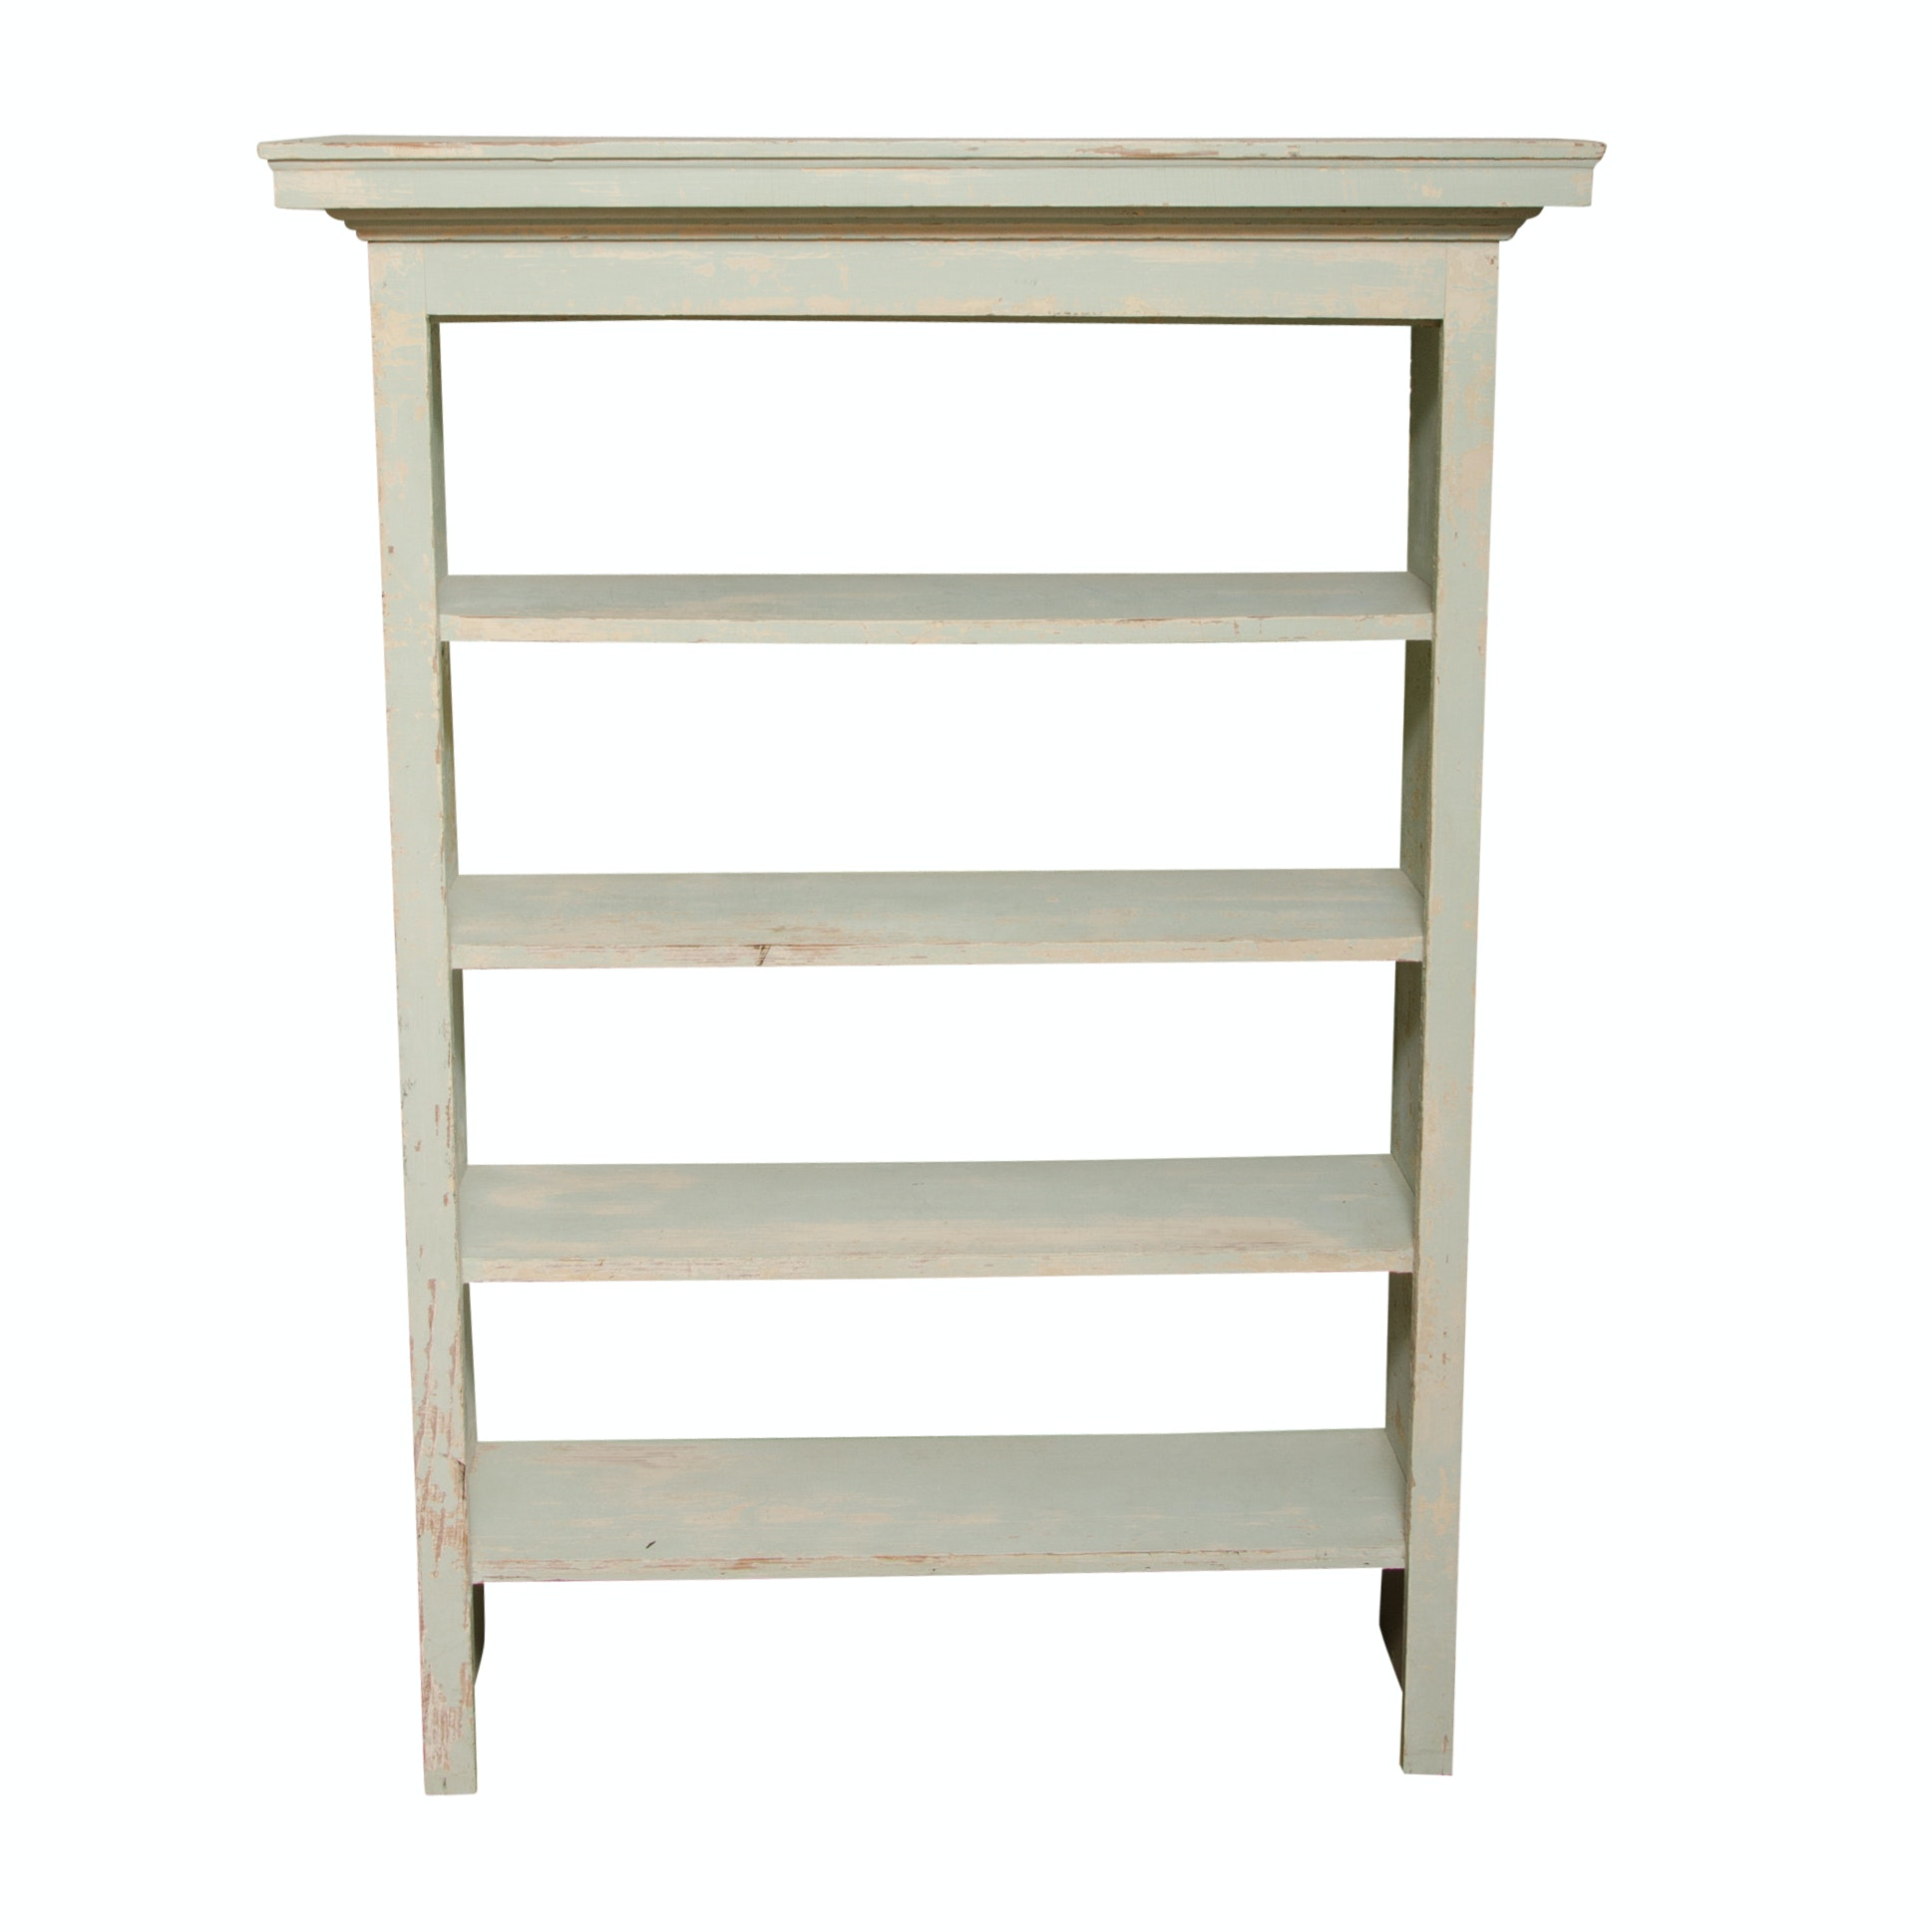 Vintage Wooden Tiered Shelf with Painted Finish